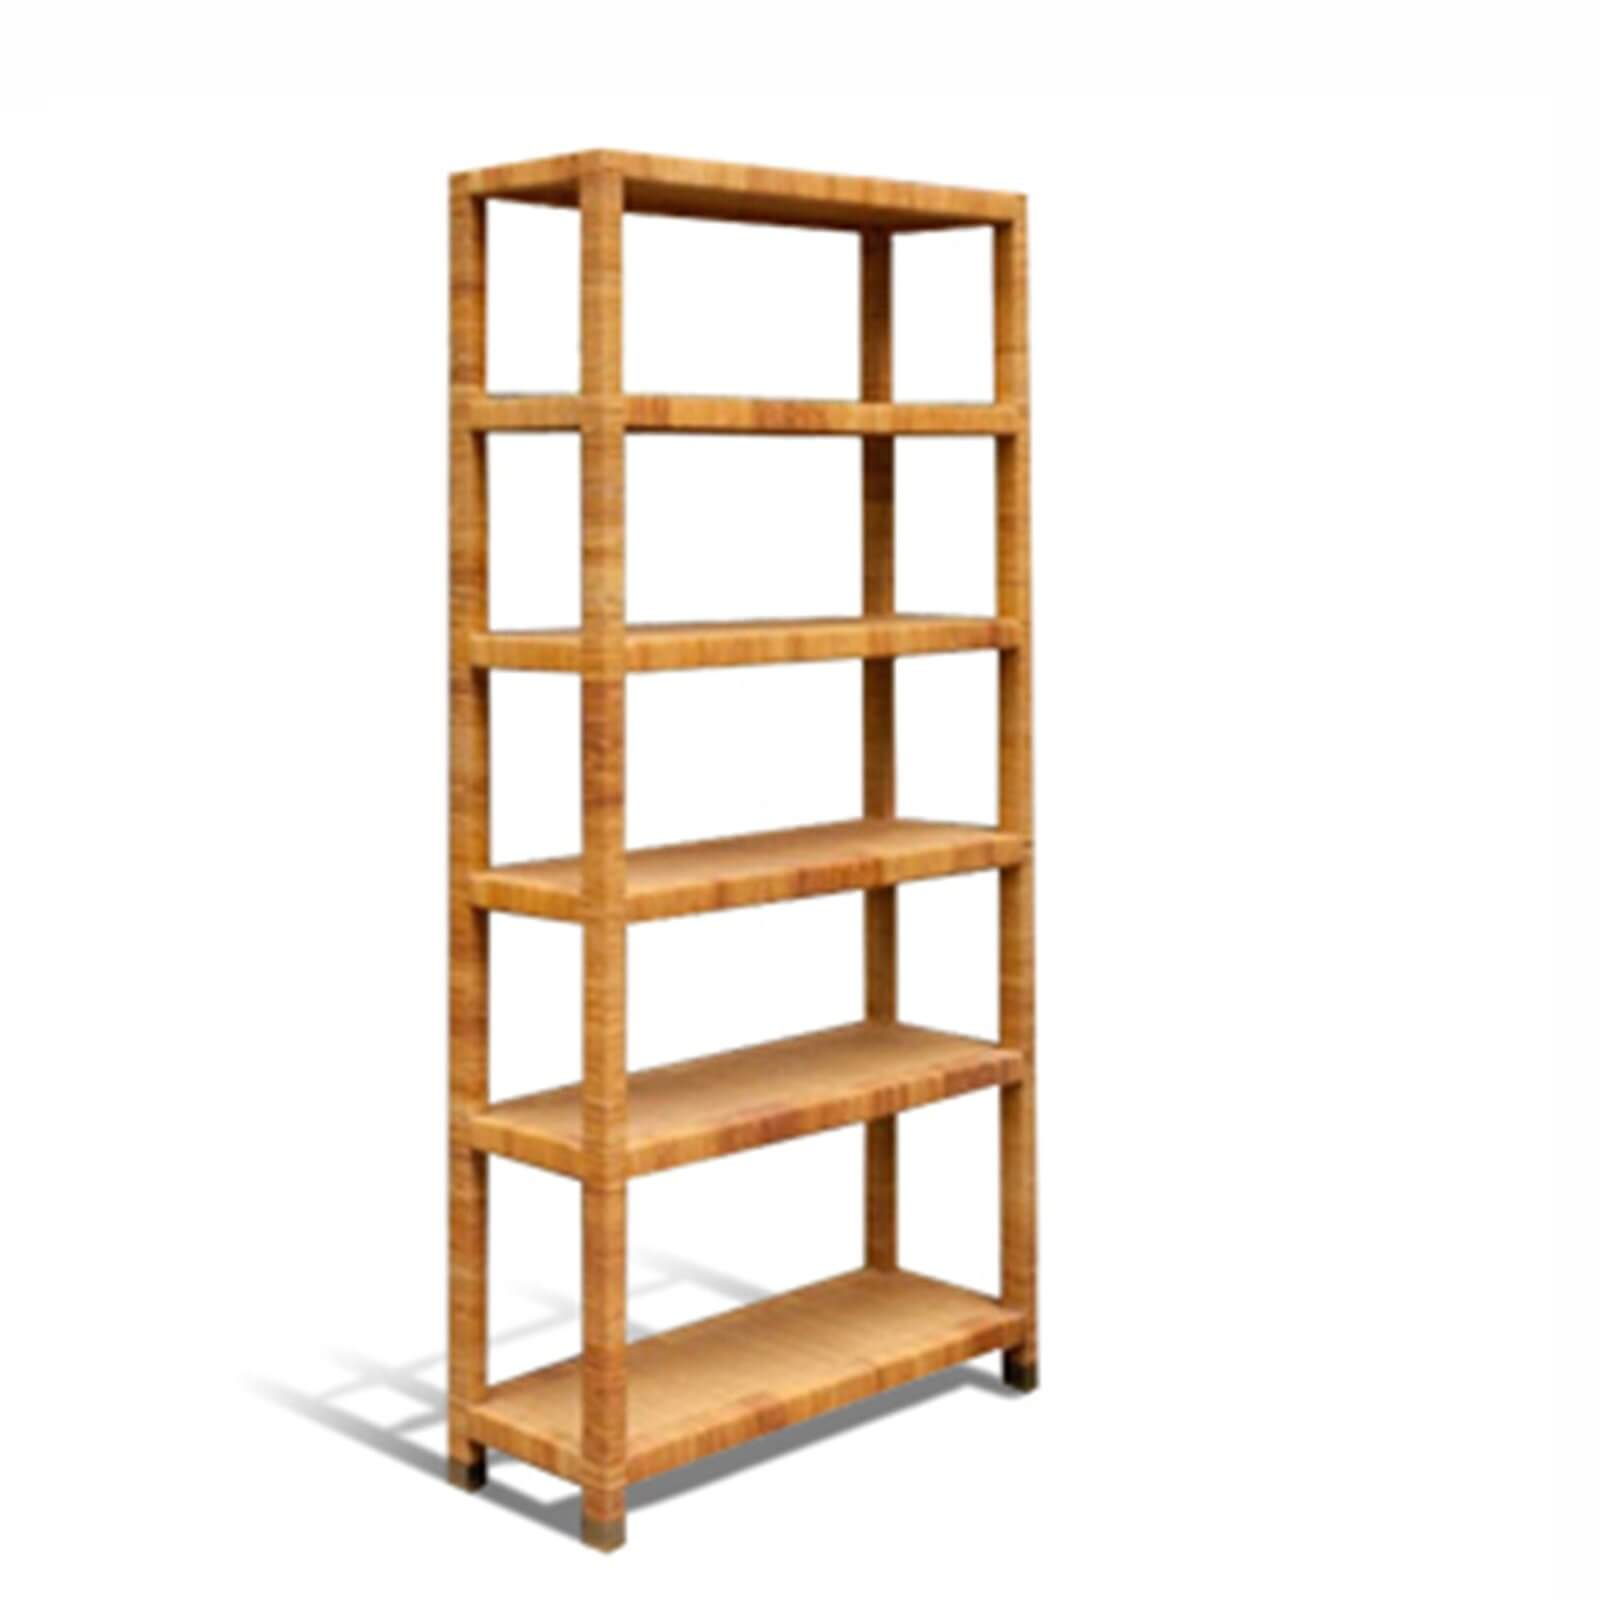 INDIGO COAST ETAGERE - STUART MEMBERY HOME COLLECTION